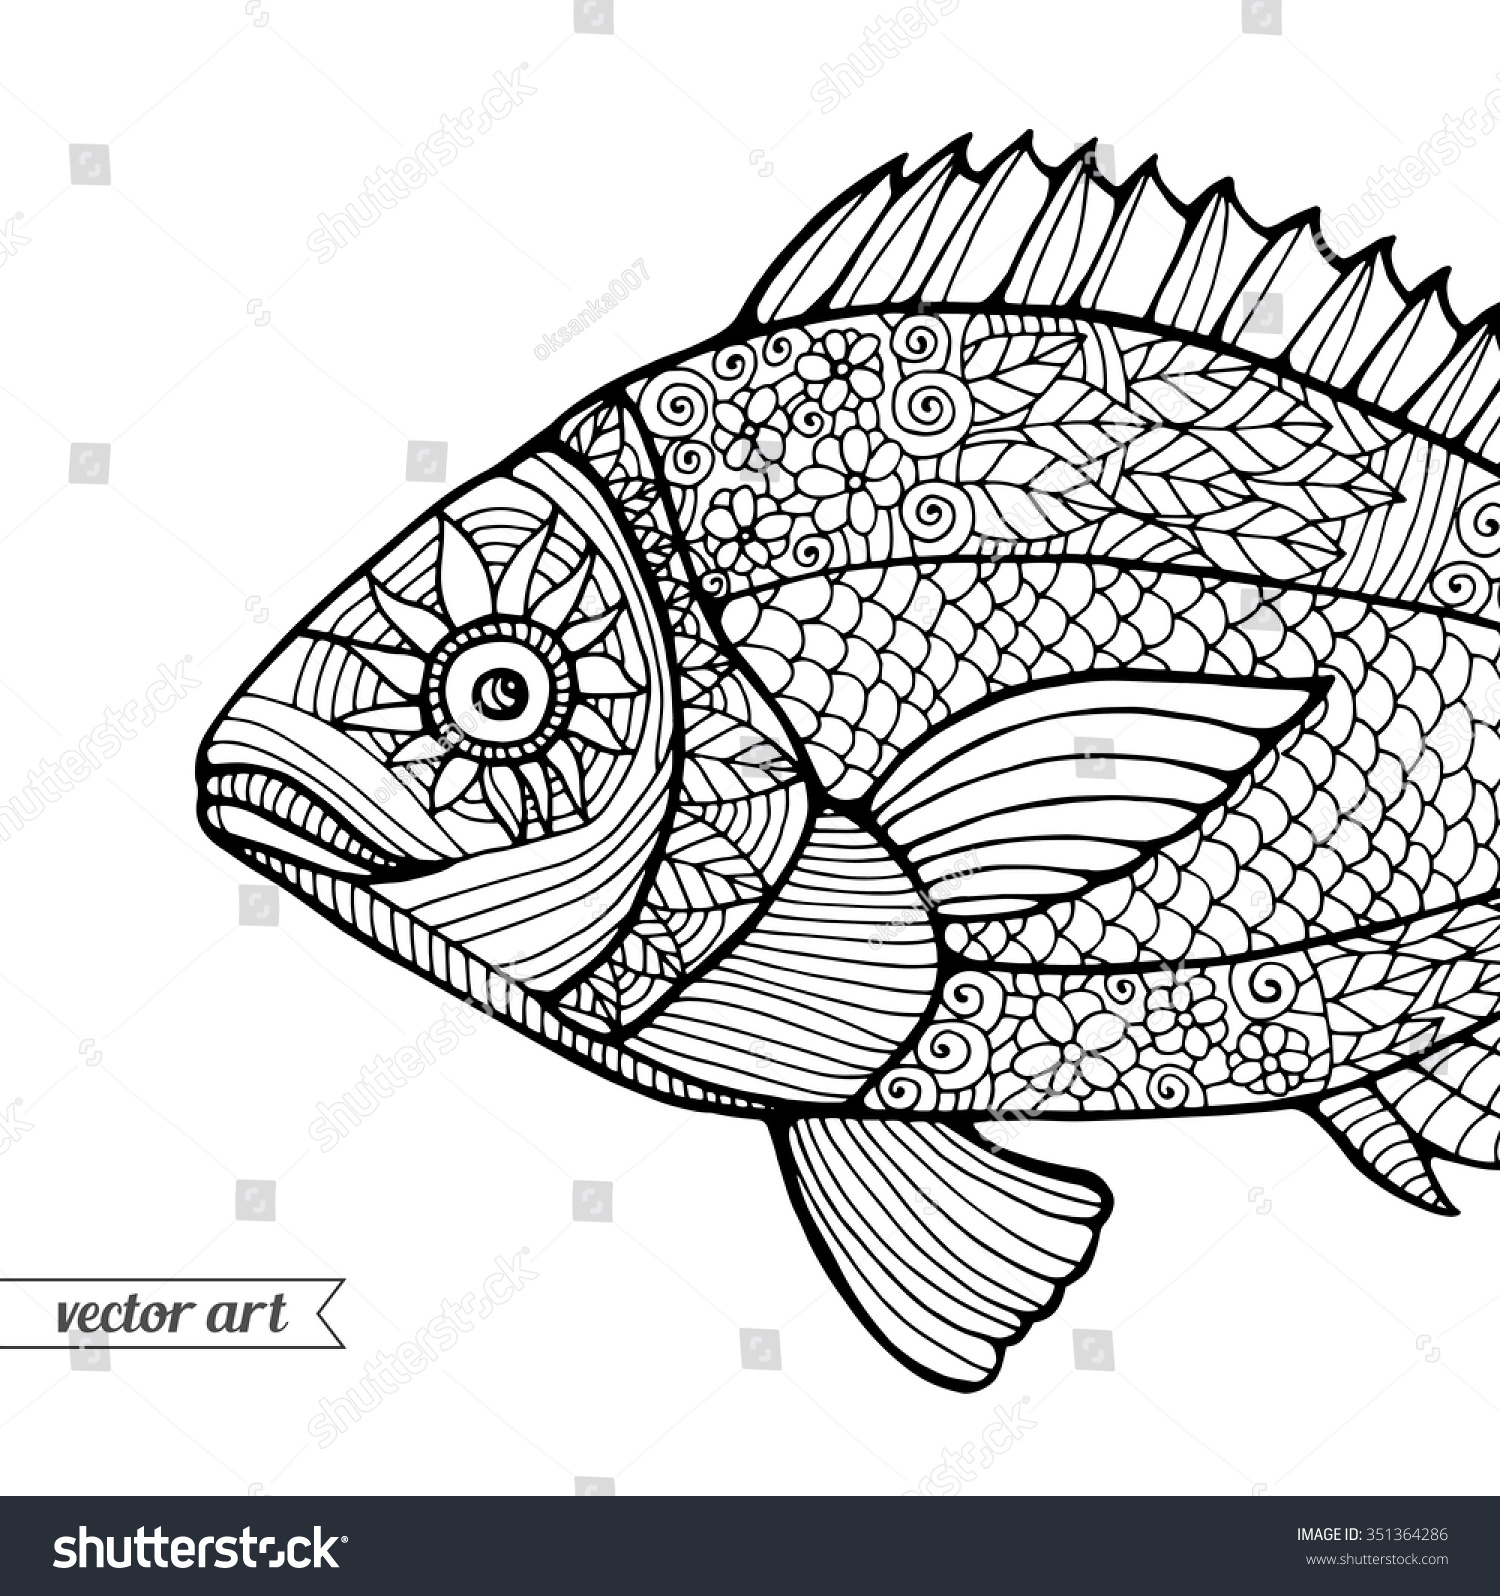 Gallery For gt Zentangle Fish Patterns